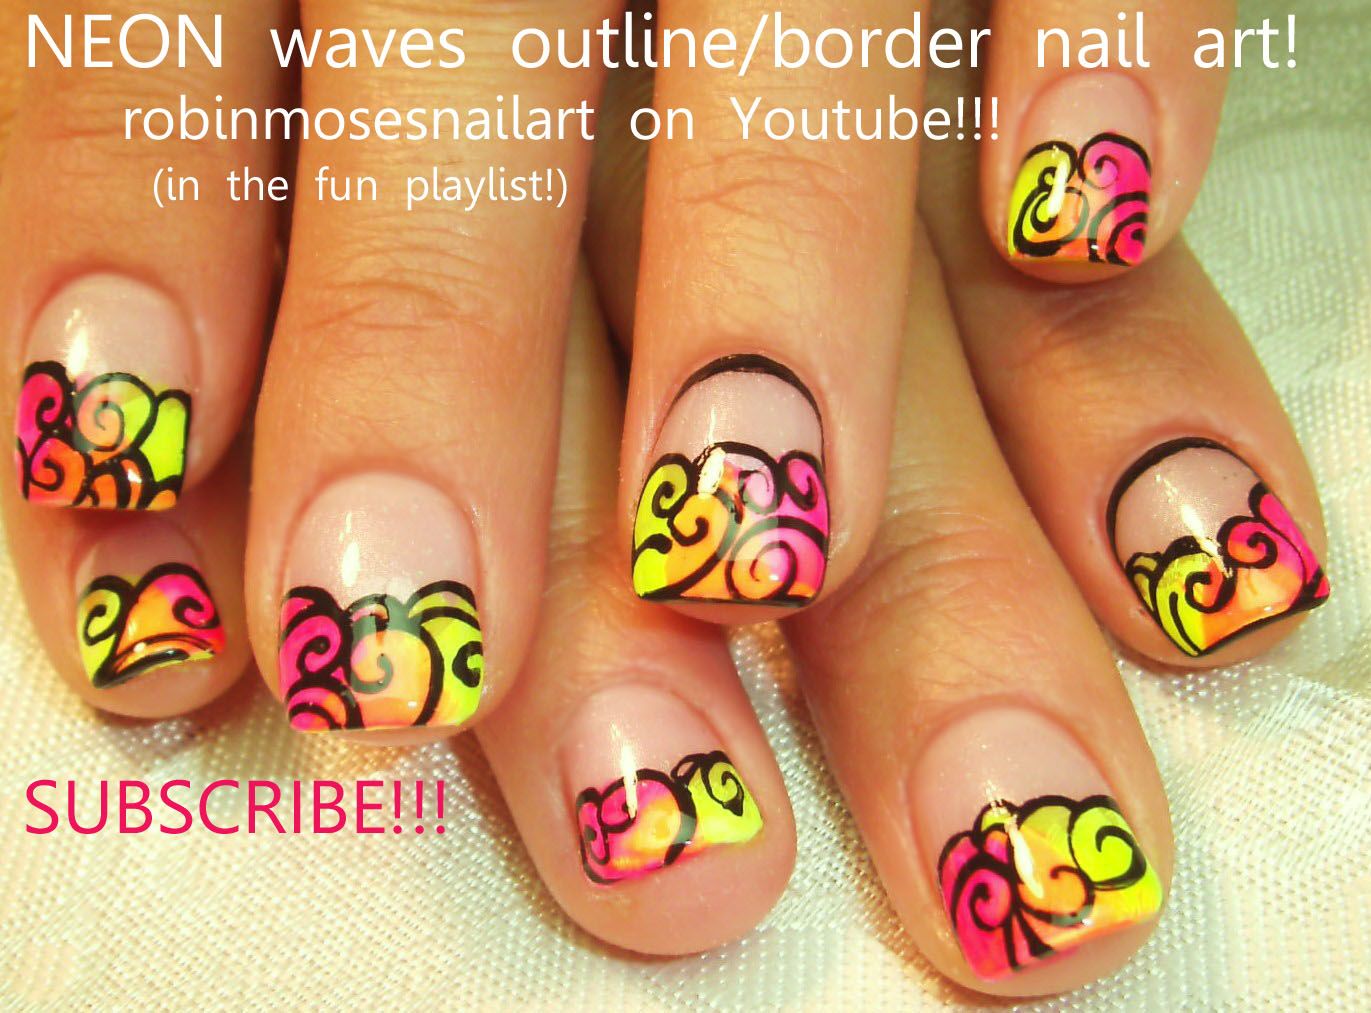 neon nails, neon pink nails, outline/border nail, border/outline ...